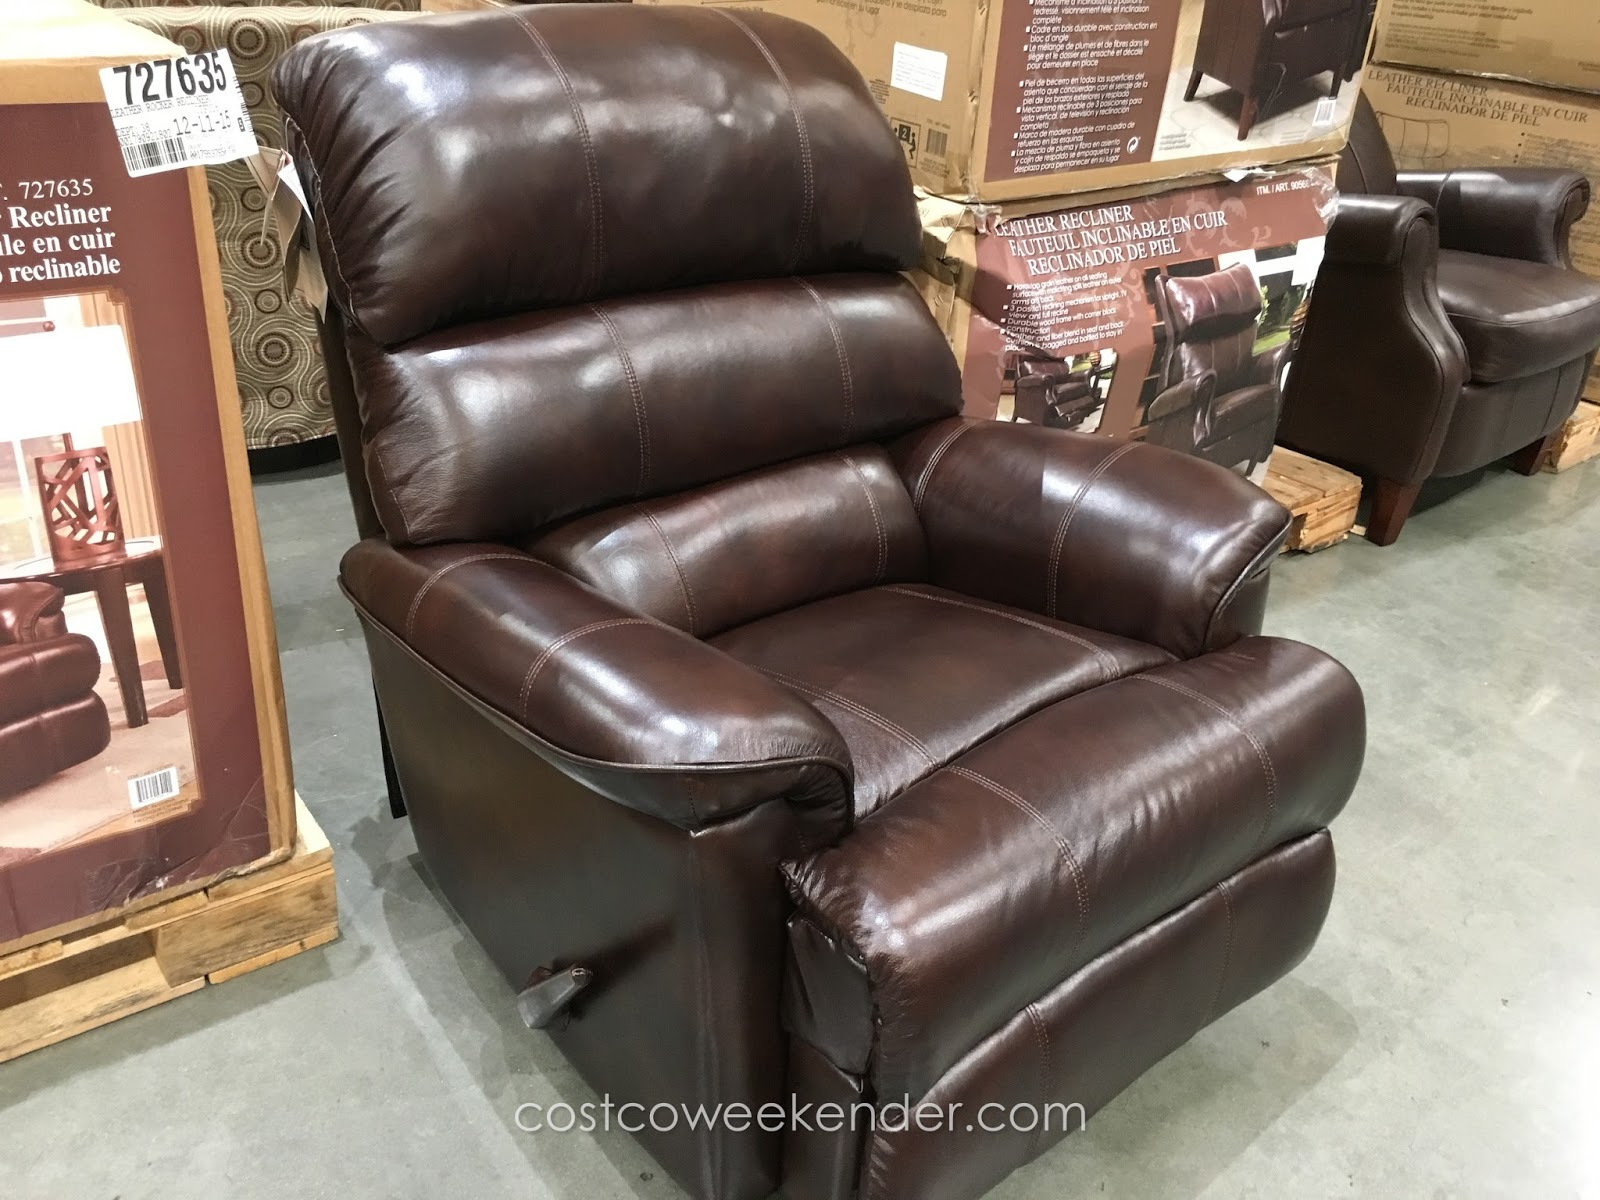 Costco Leather Chairs Barber Chair Hydraulic Pump Barcalounger Rocker Recliner Weekender Relax In Comfort On The